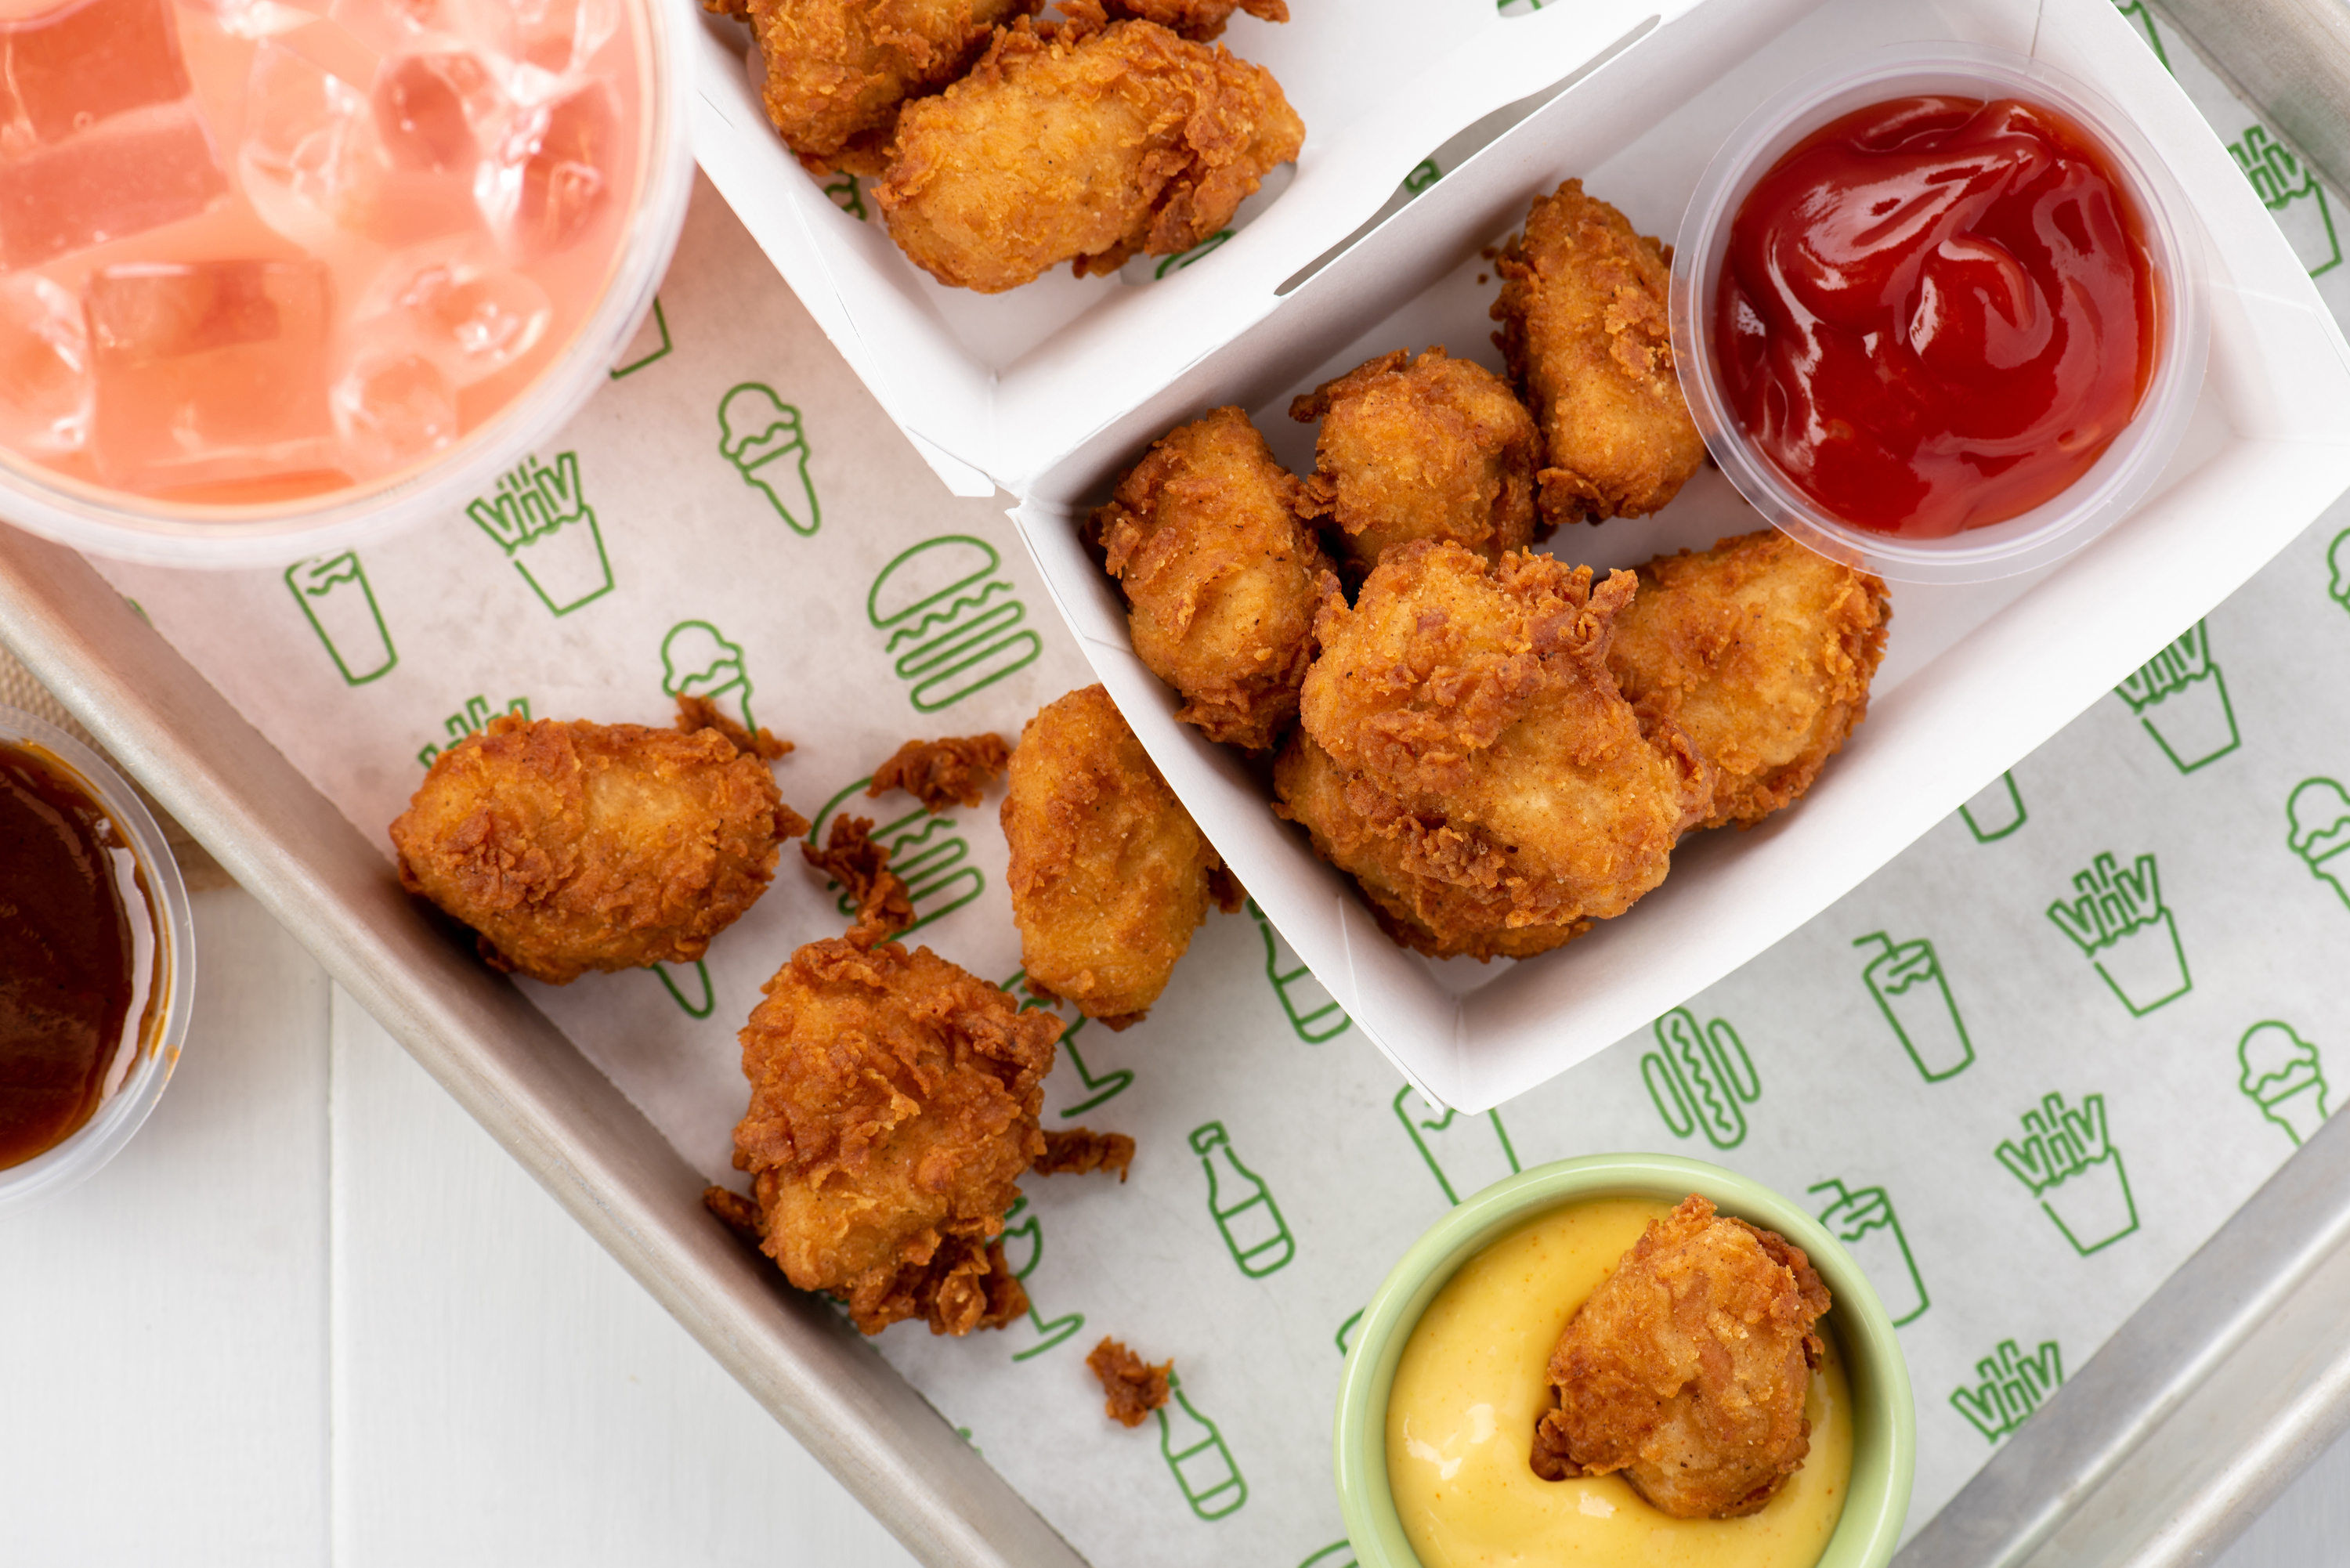 Shake Shack is serving chicken nuggets at their new location